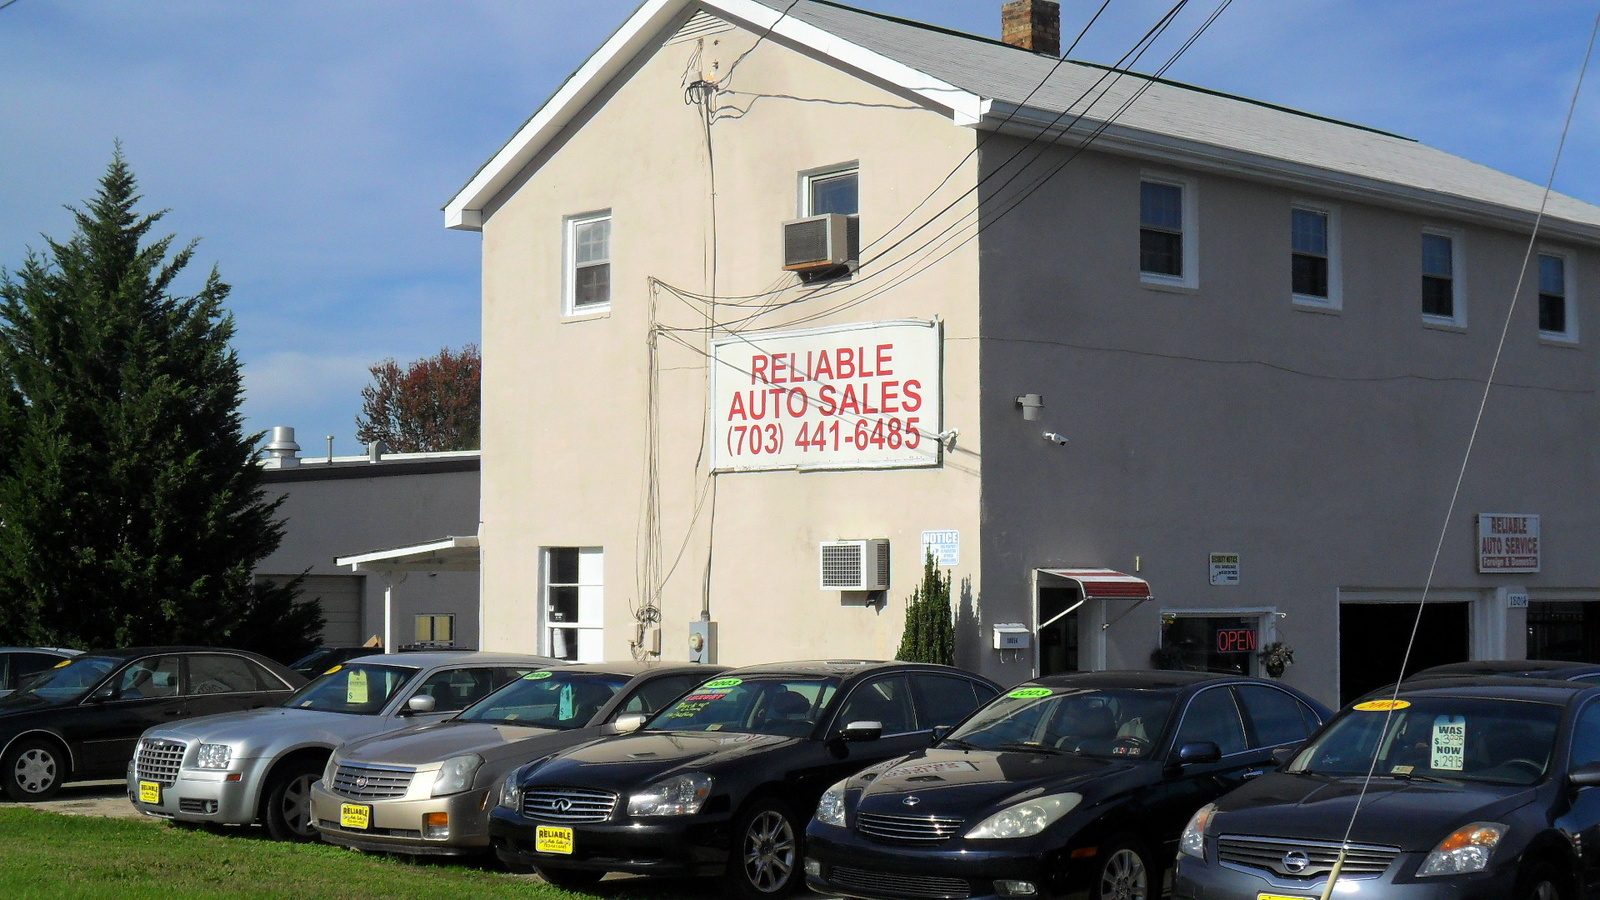 Reliable Auto Sales - Dumfries, VA: Read Consumer reviews, Browse Used and New Cars for Sale